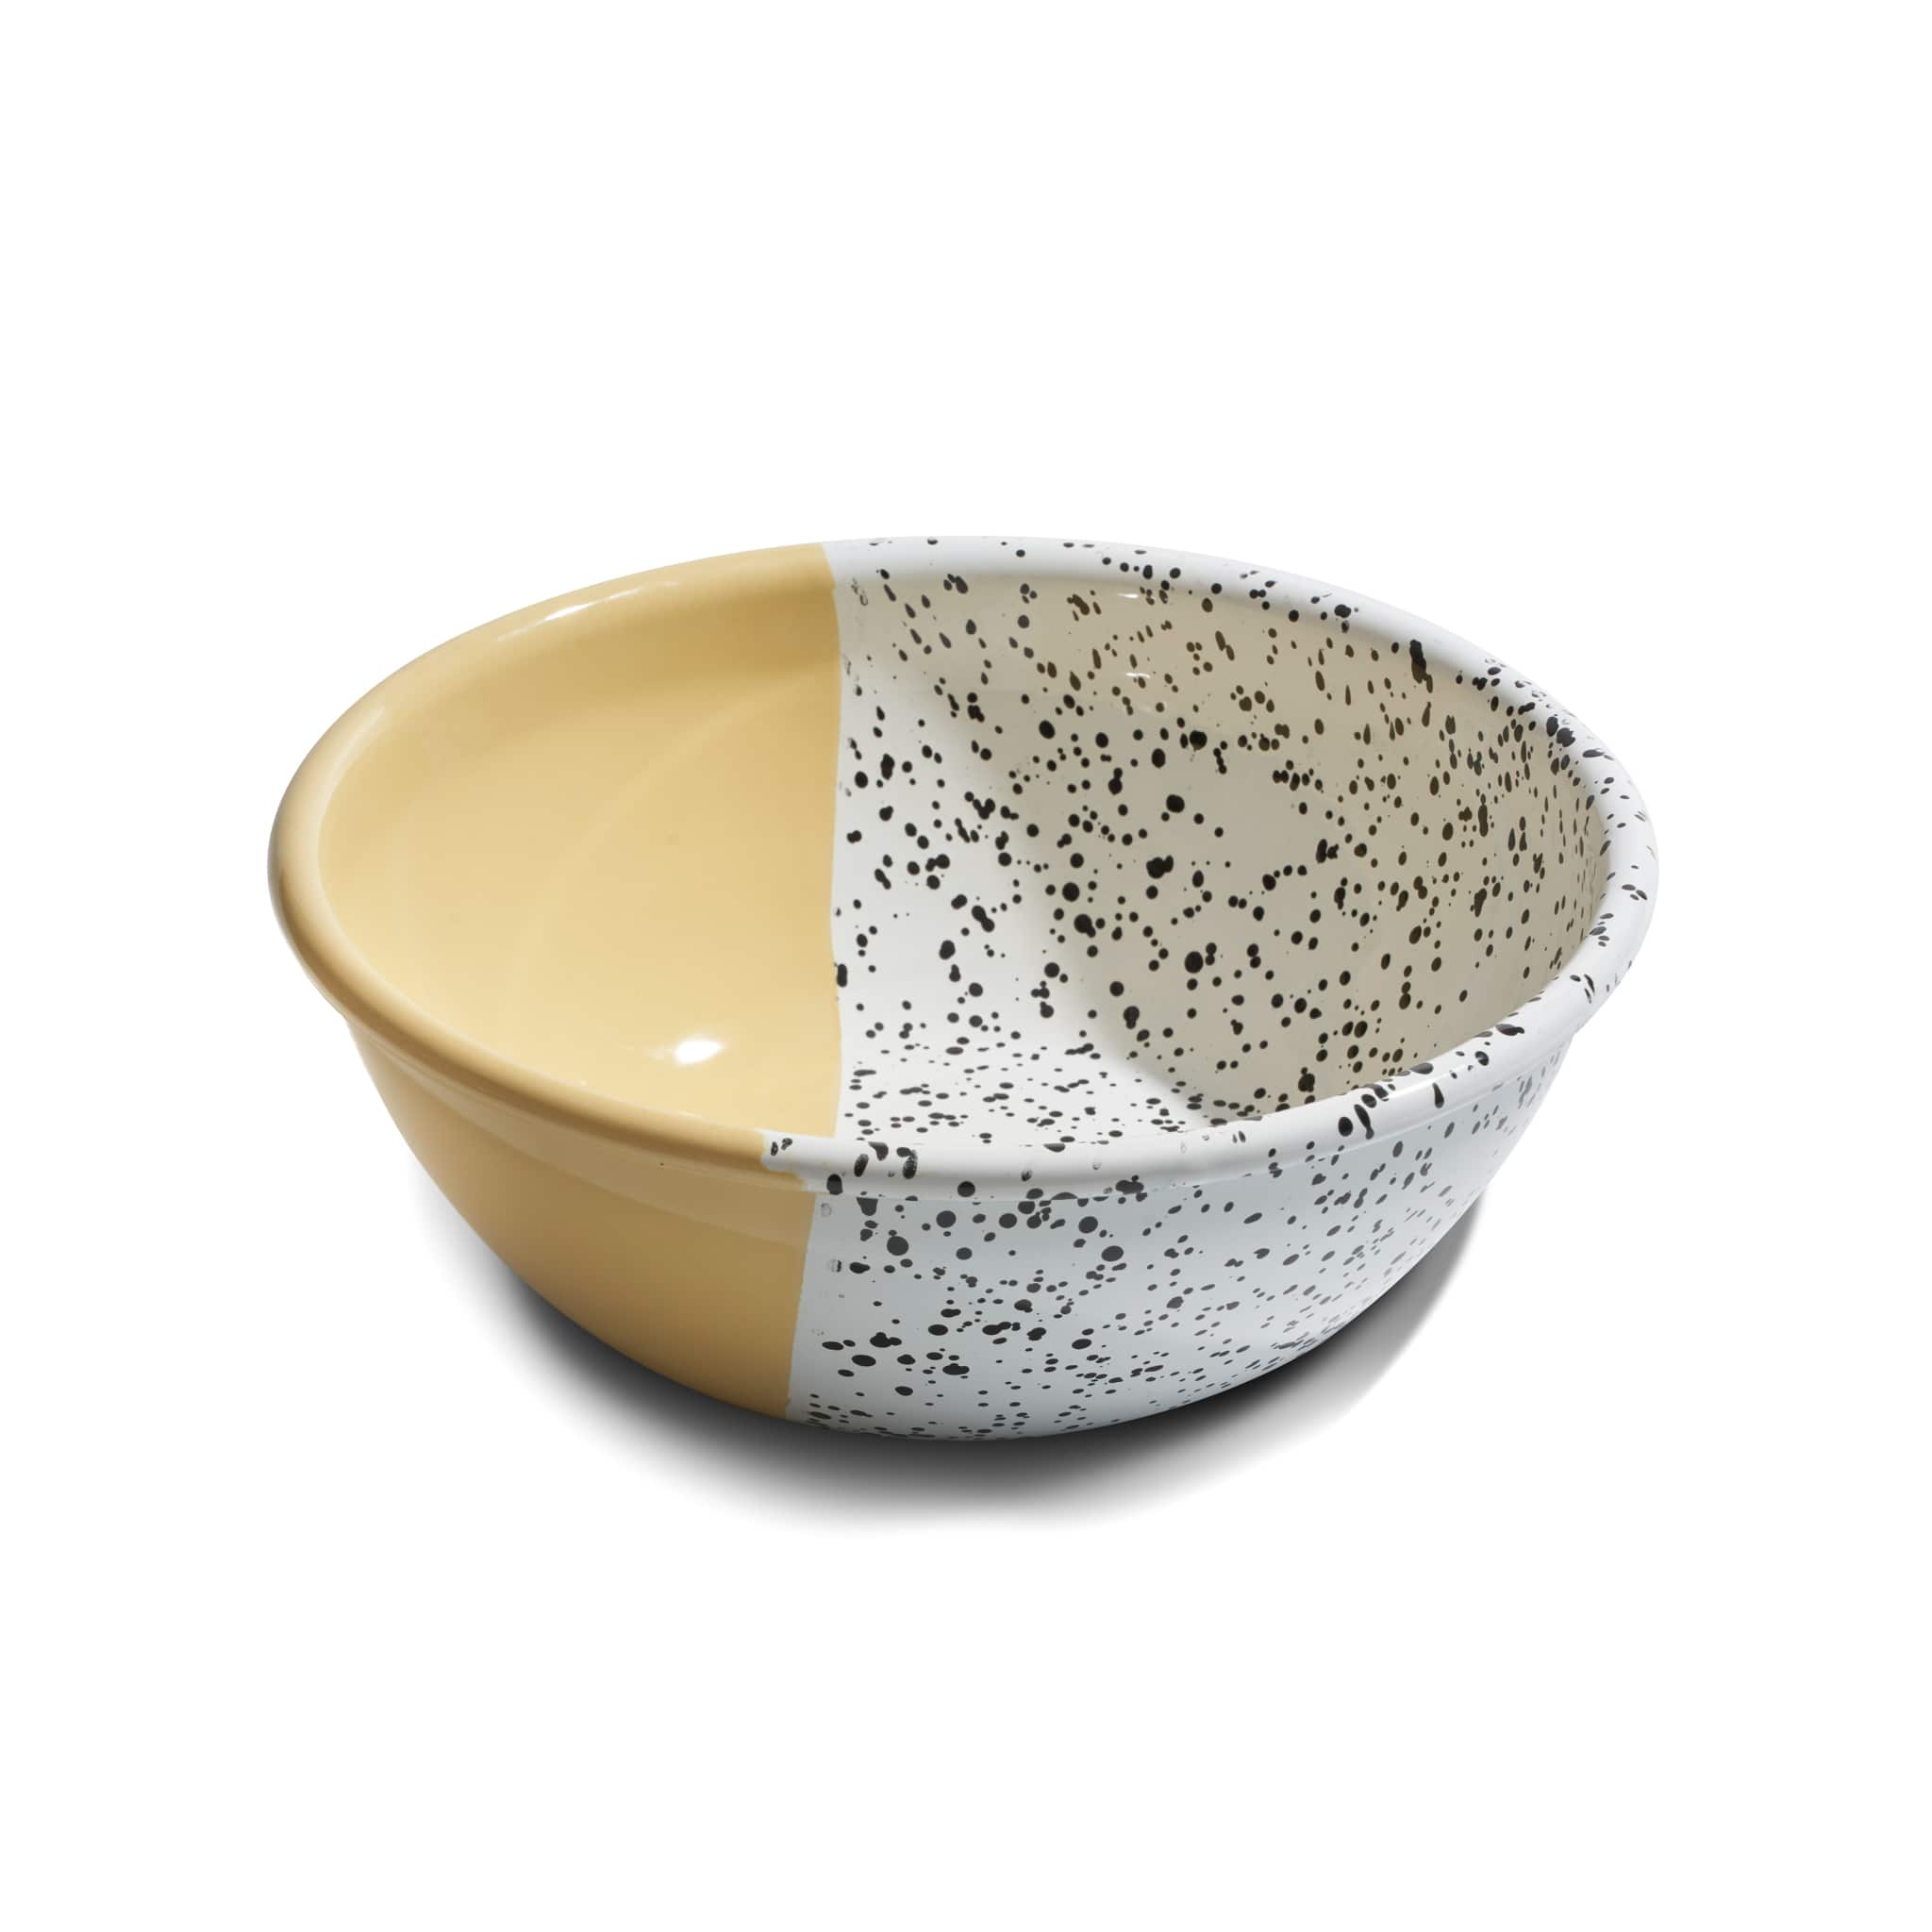 Colour Pop Enamel Salad Bowl Yellow